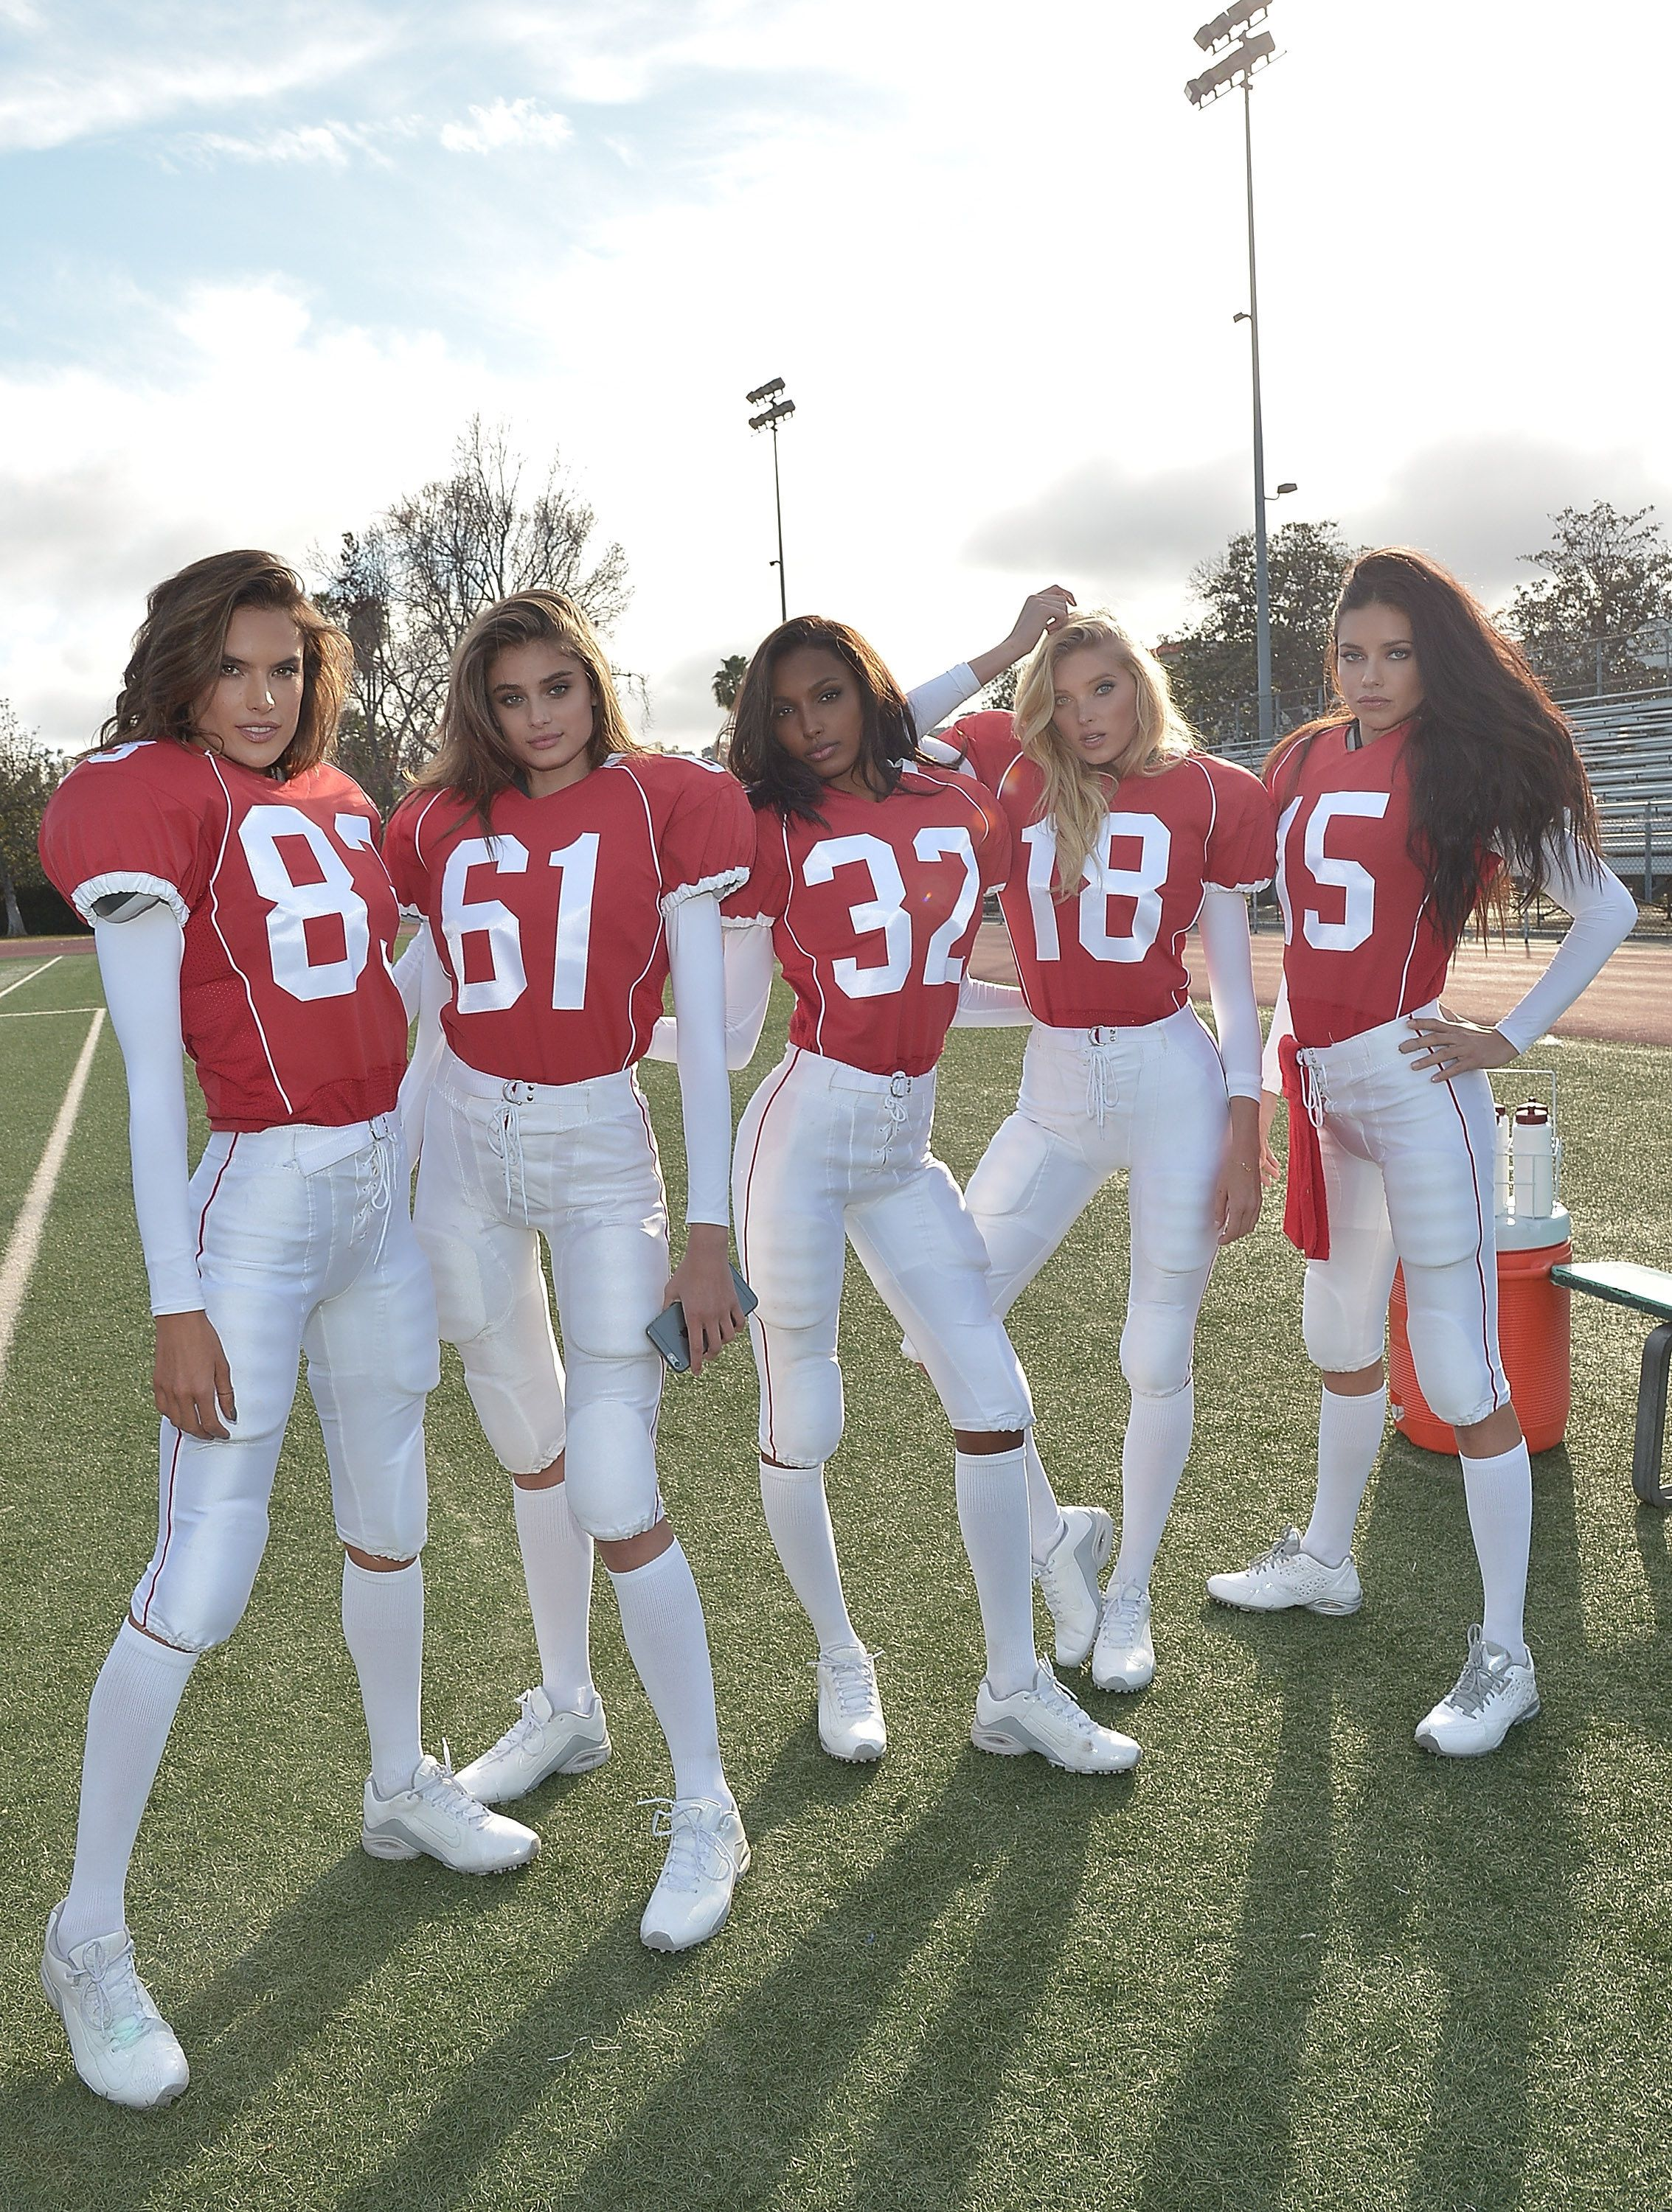 Football Player Halloween Costume.Watch The Victoria S Secret Angels Play The Most Glamorous Game Of Football Ever Halloween Costumes Friends Bff Halloween Costumes Cute Halloween Costumes